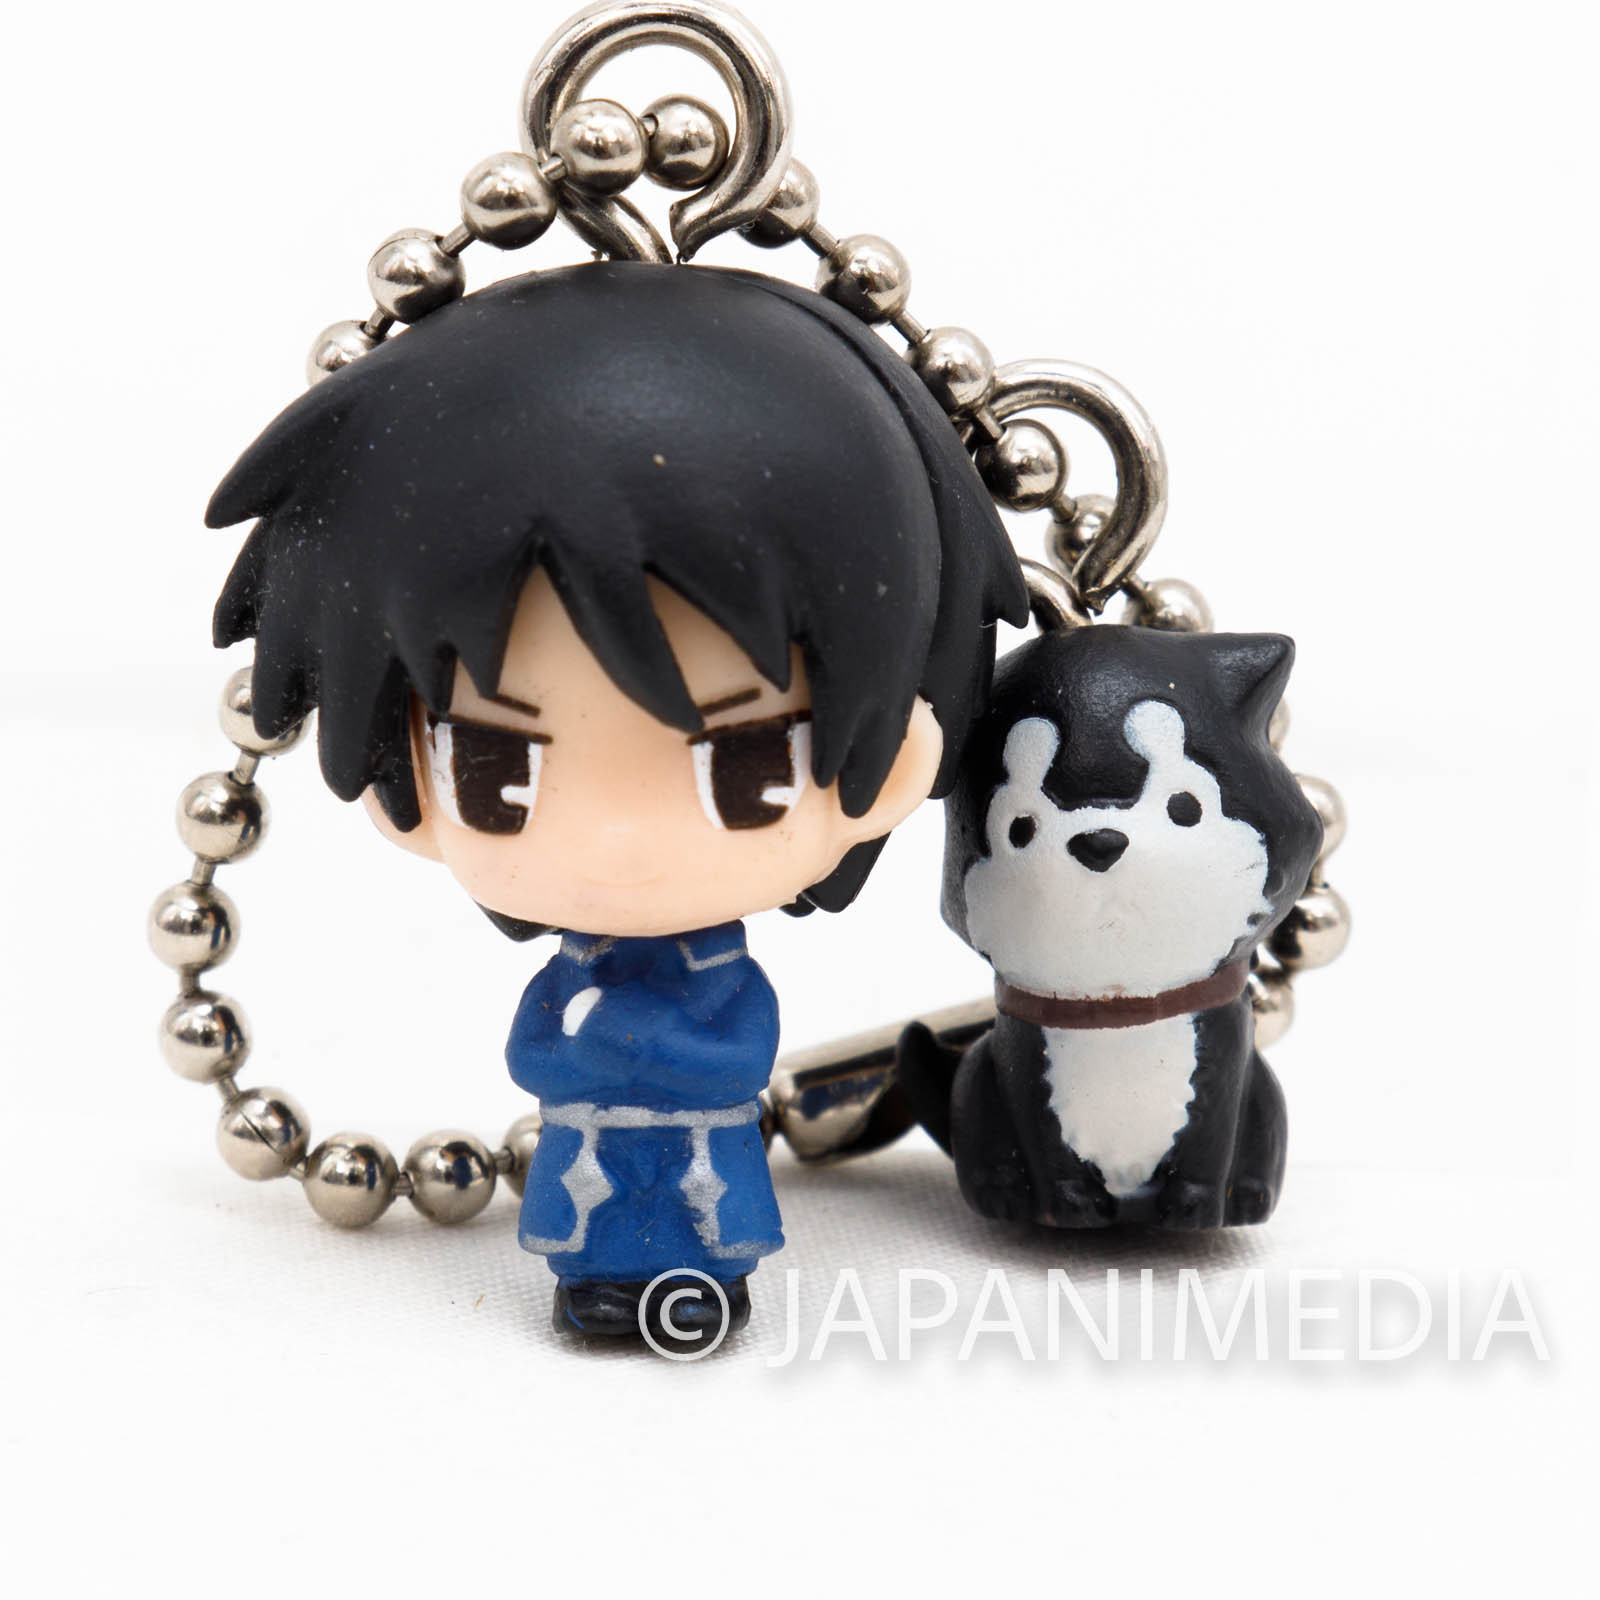 FullMetal Alchemist Roy Mustang & Black Hayate Hagaren W Swing Figure Ball Keychain vol.2 JAPAN ANIME MANGA